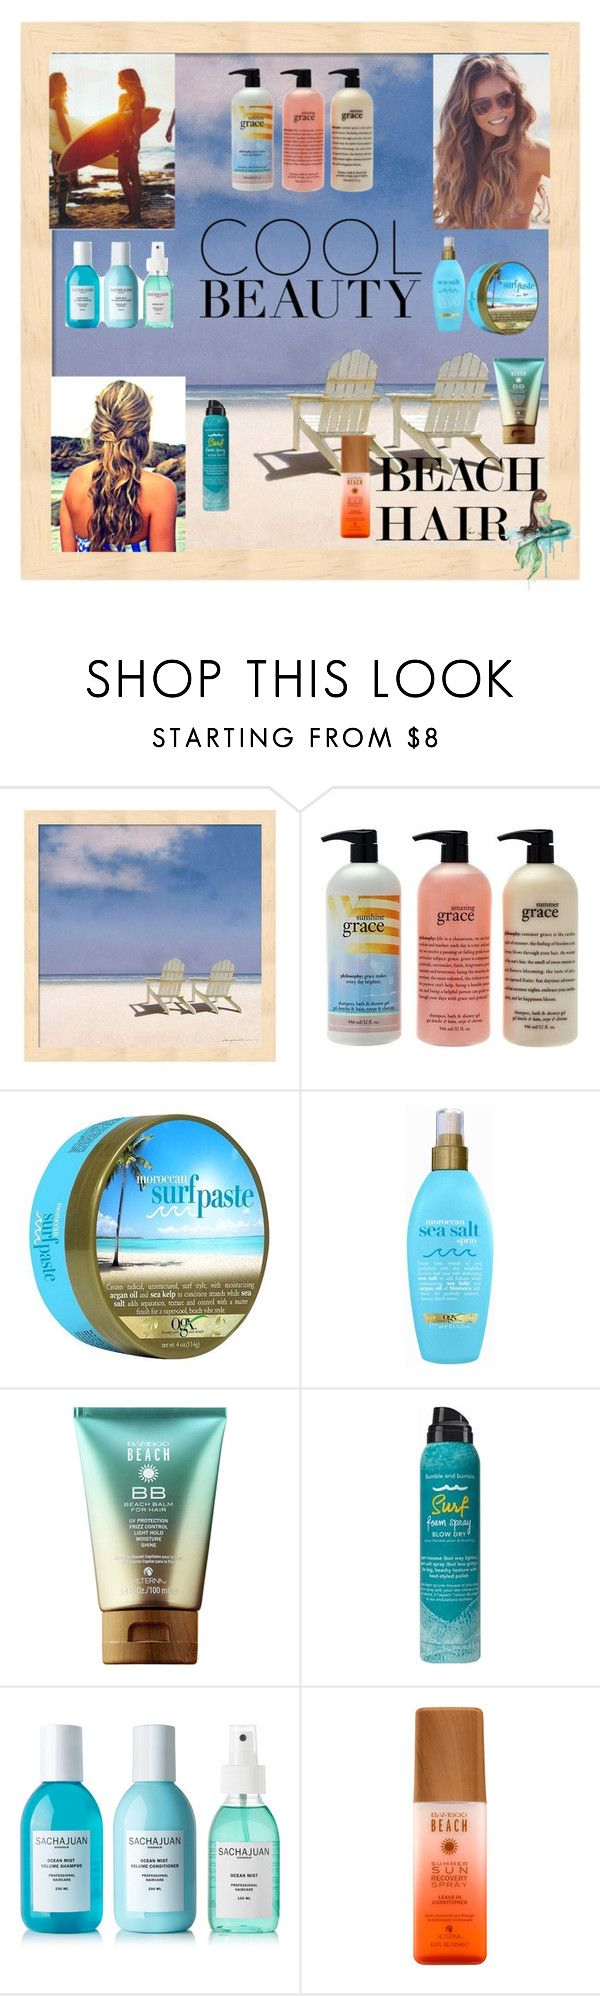 """Beach Hair #3"" by kikikoji ❤ liked on Polyvore featuring beauty, Surfer Girl, philosophy, Organix, Bumble and bumble, Sachajuan and beachhair"